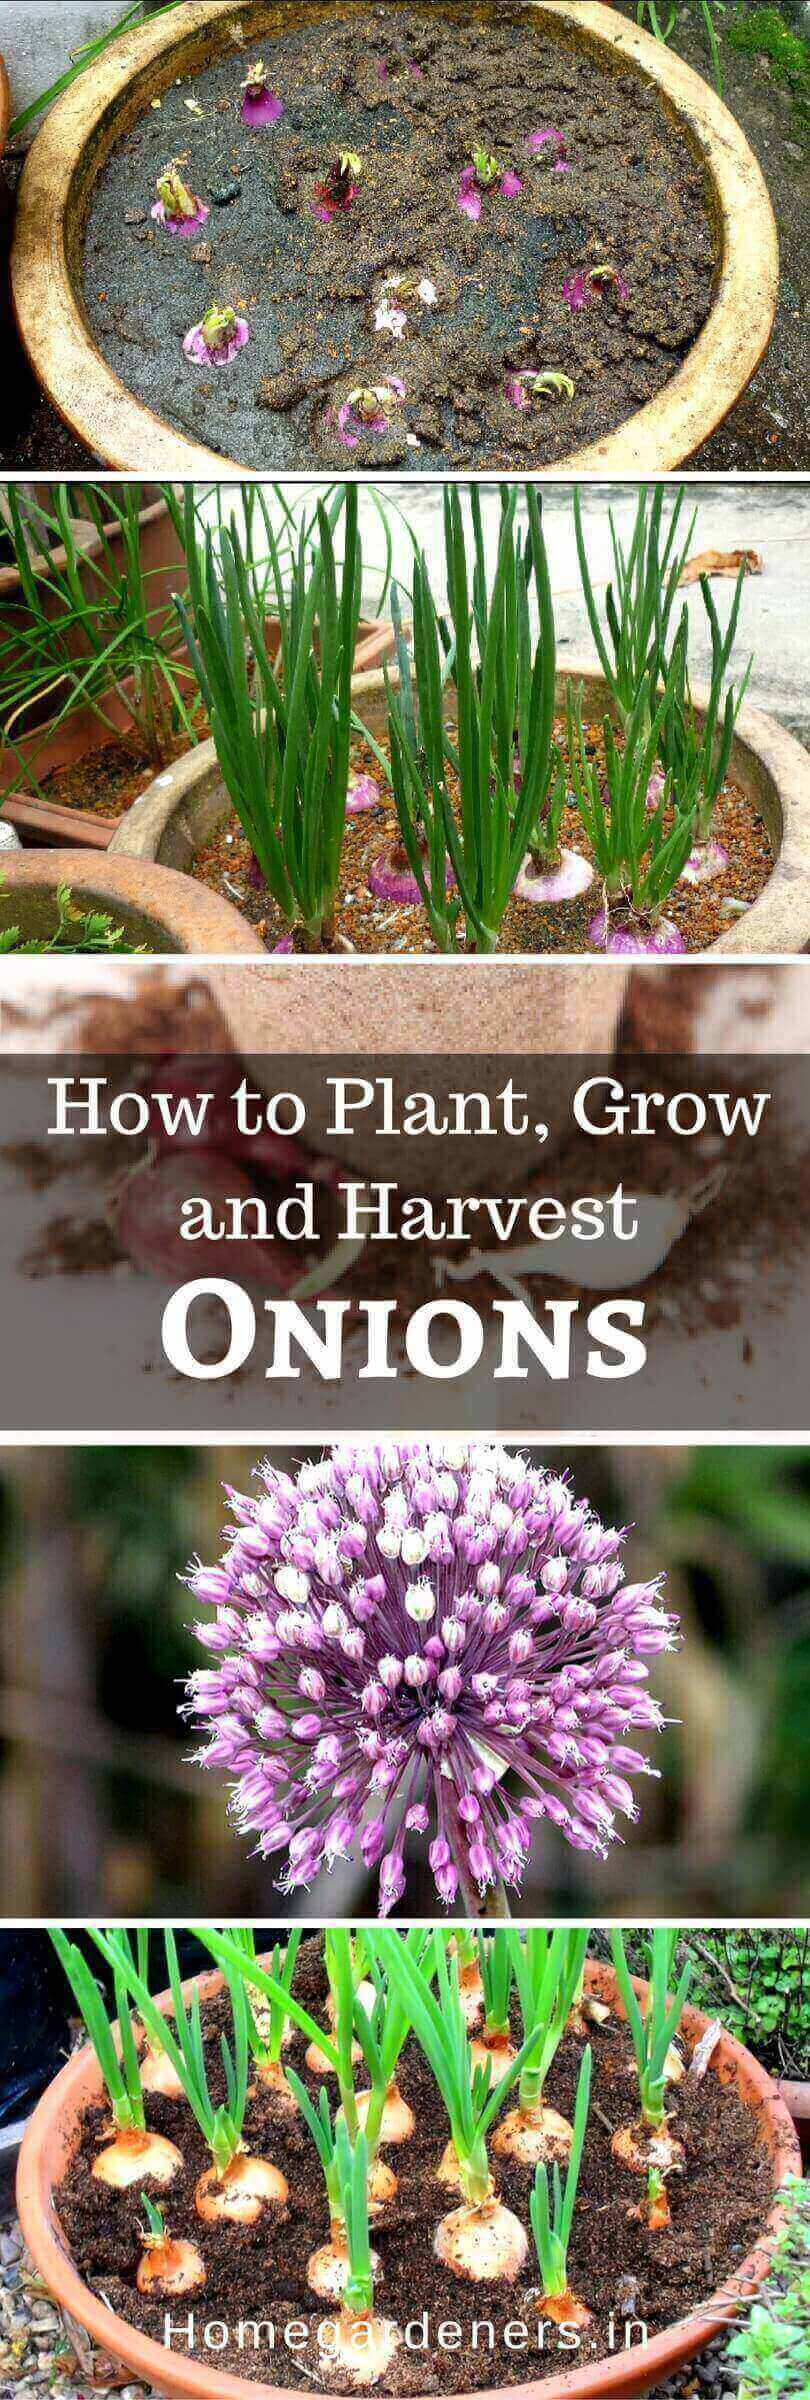 Growing and Caring of Onions - How to Harvest Onions